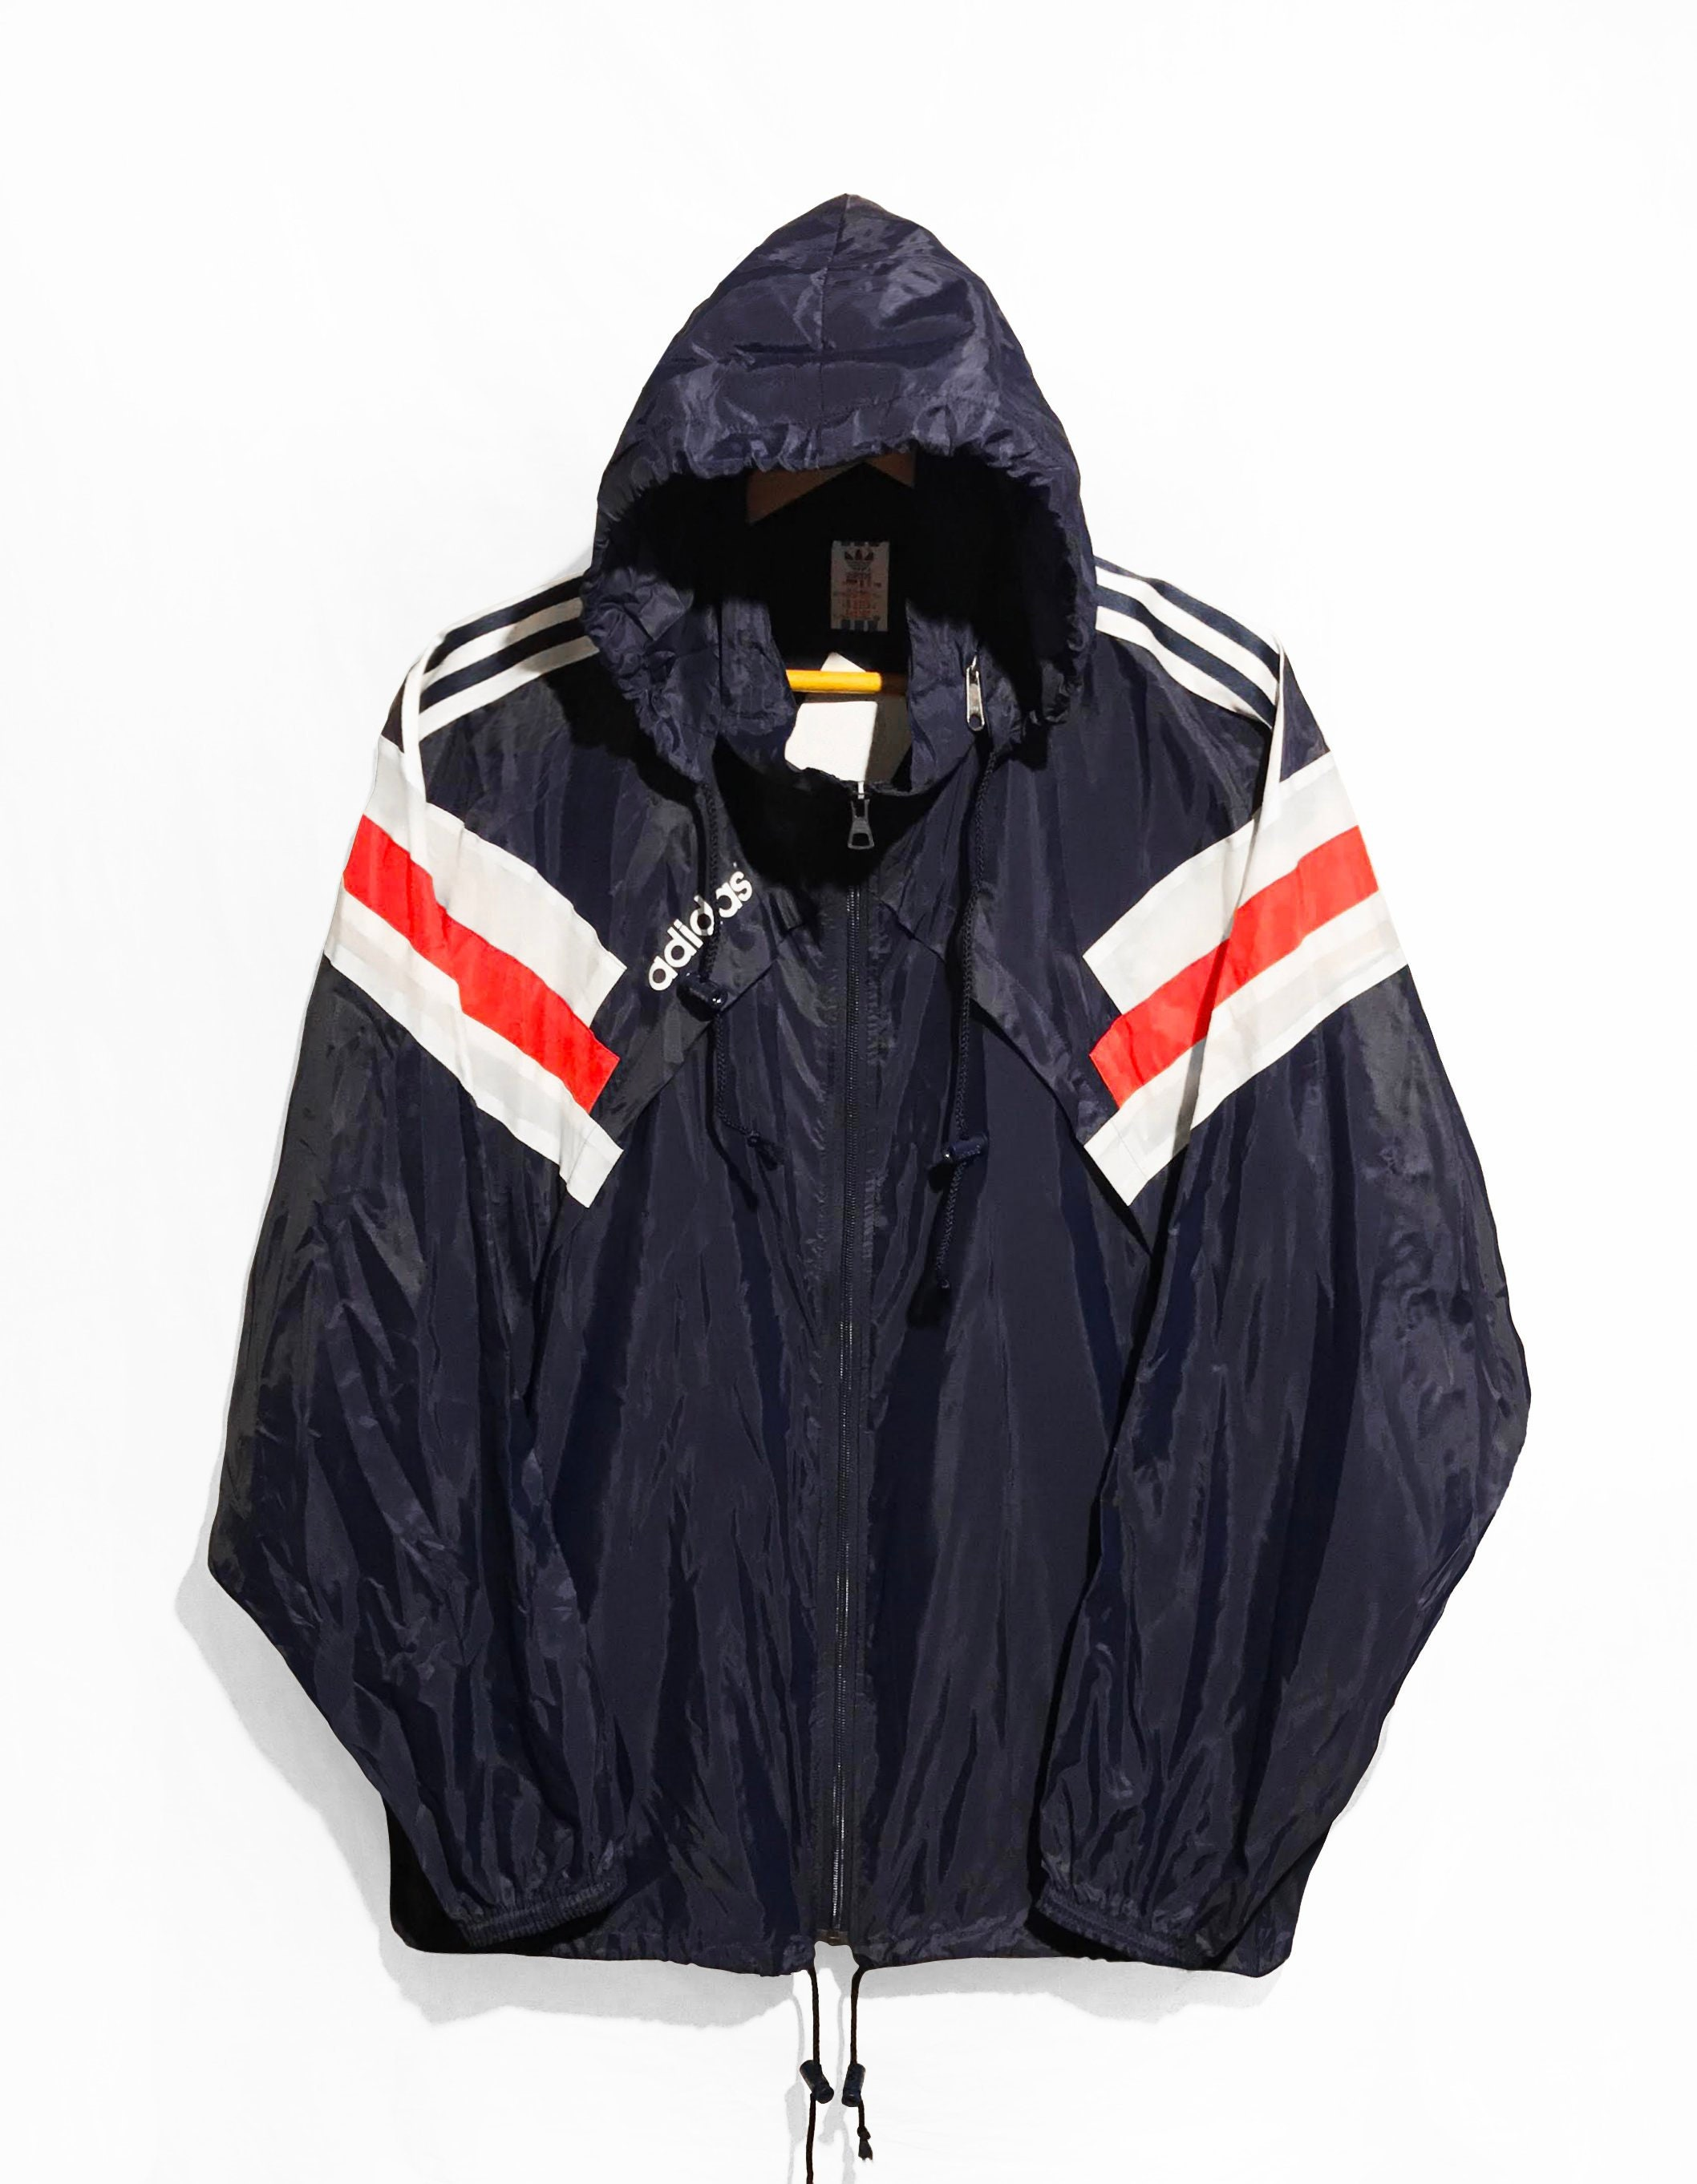 51f94bd3efd75 Vintage 90s Adidas Cut And Saw Windbreaker jacket Multicolor PACKABLE  Blue/white/Red Size XL